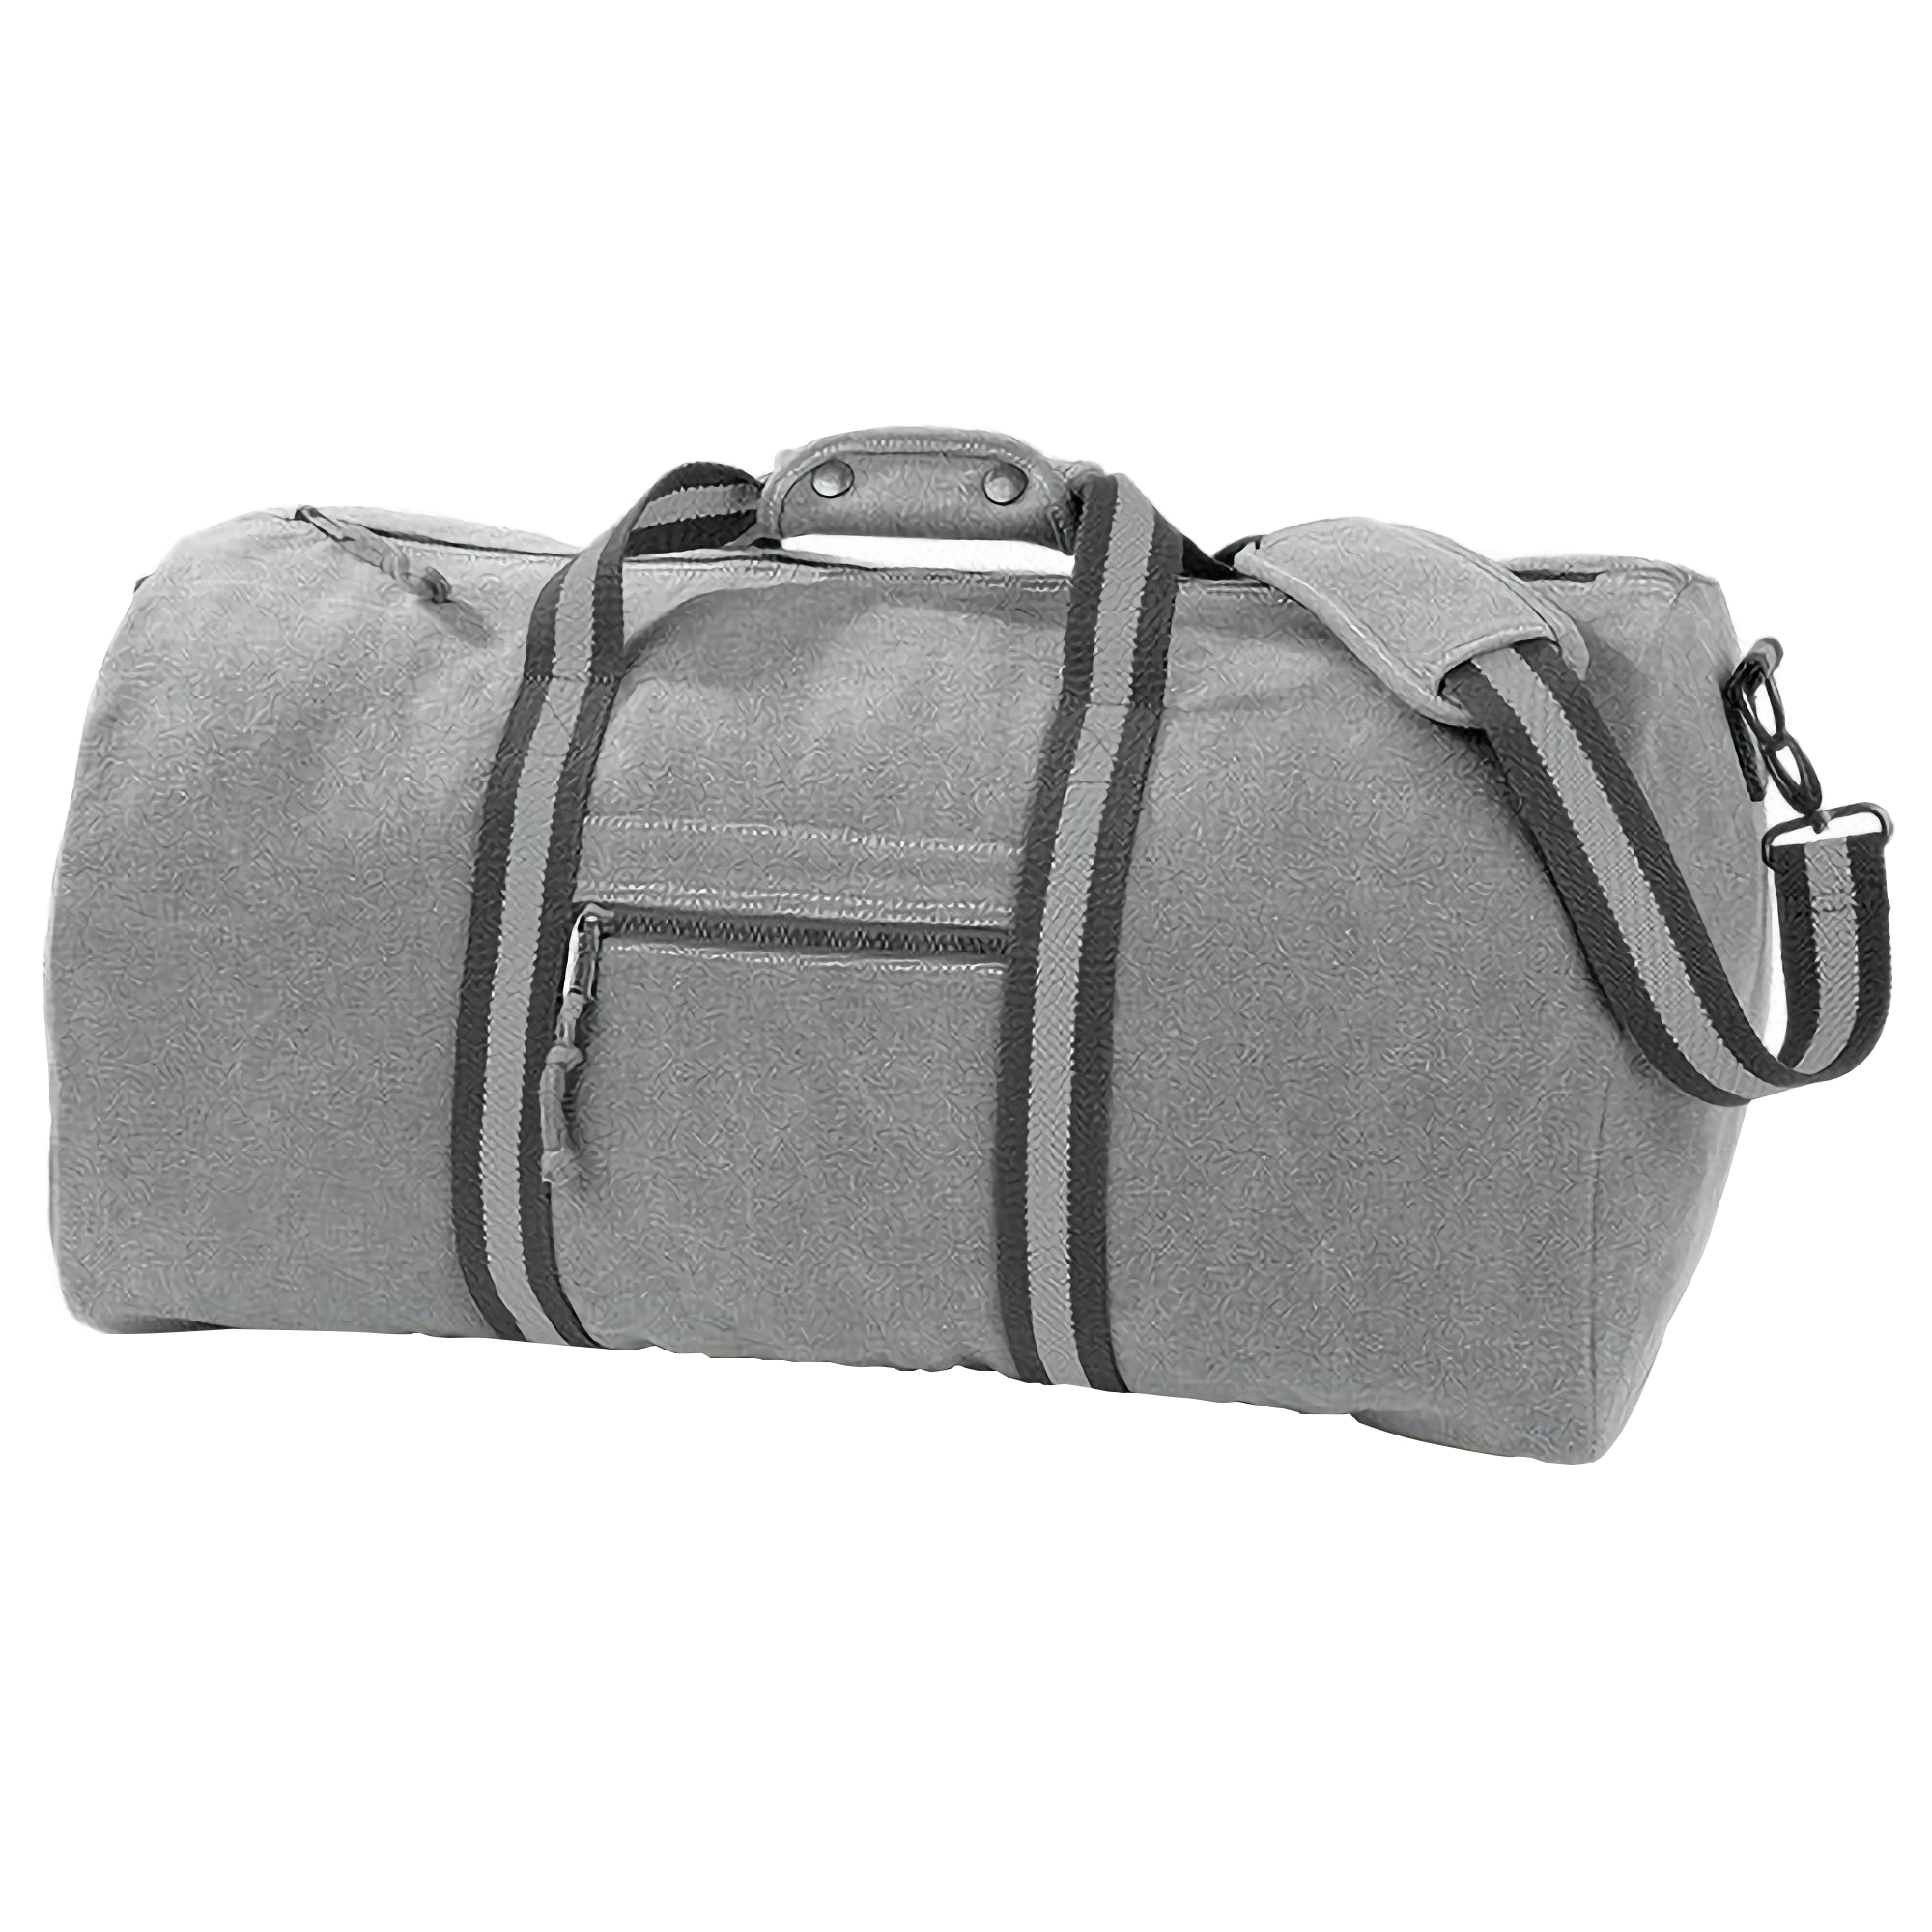 Quadra Vintage Canvas Holdall Duffle Bag - 45 Litres (Pack of 2) (One Size) (Vintage Black)